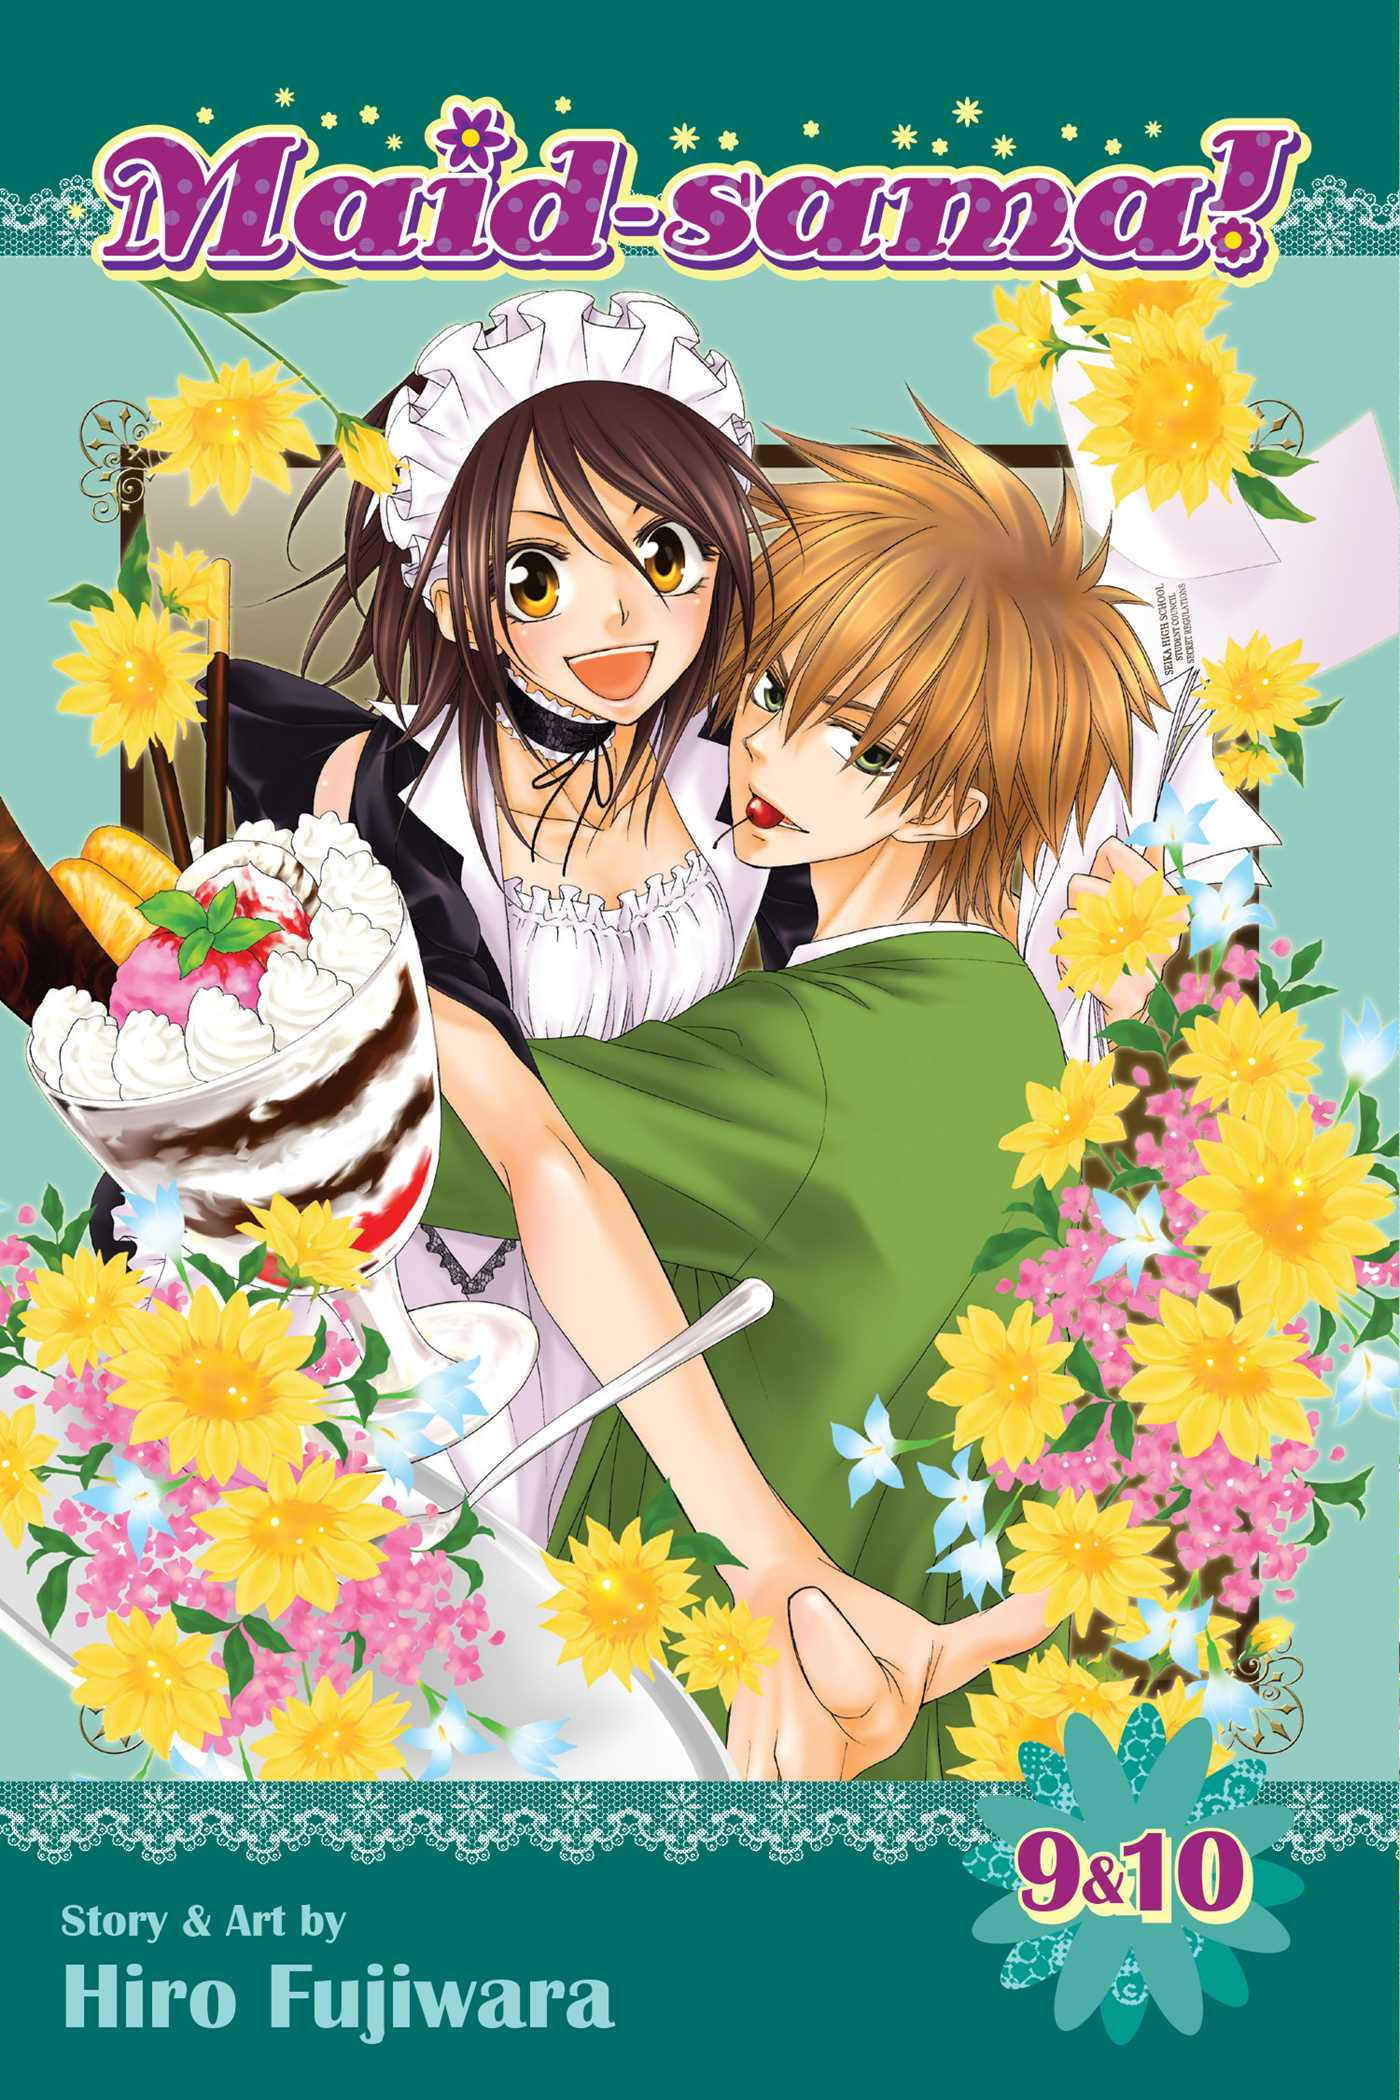 Maid-sama! 2 in 1 Edition Manga Volume 5